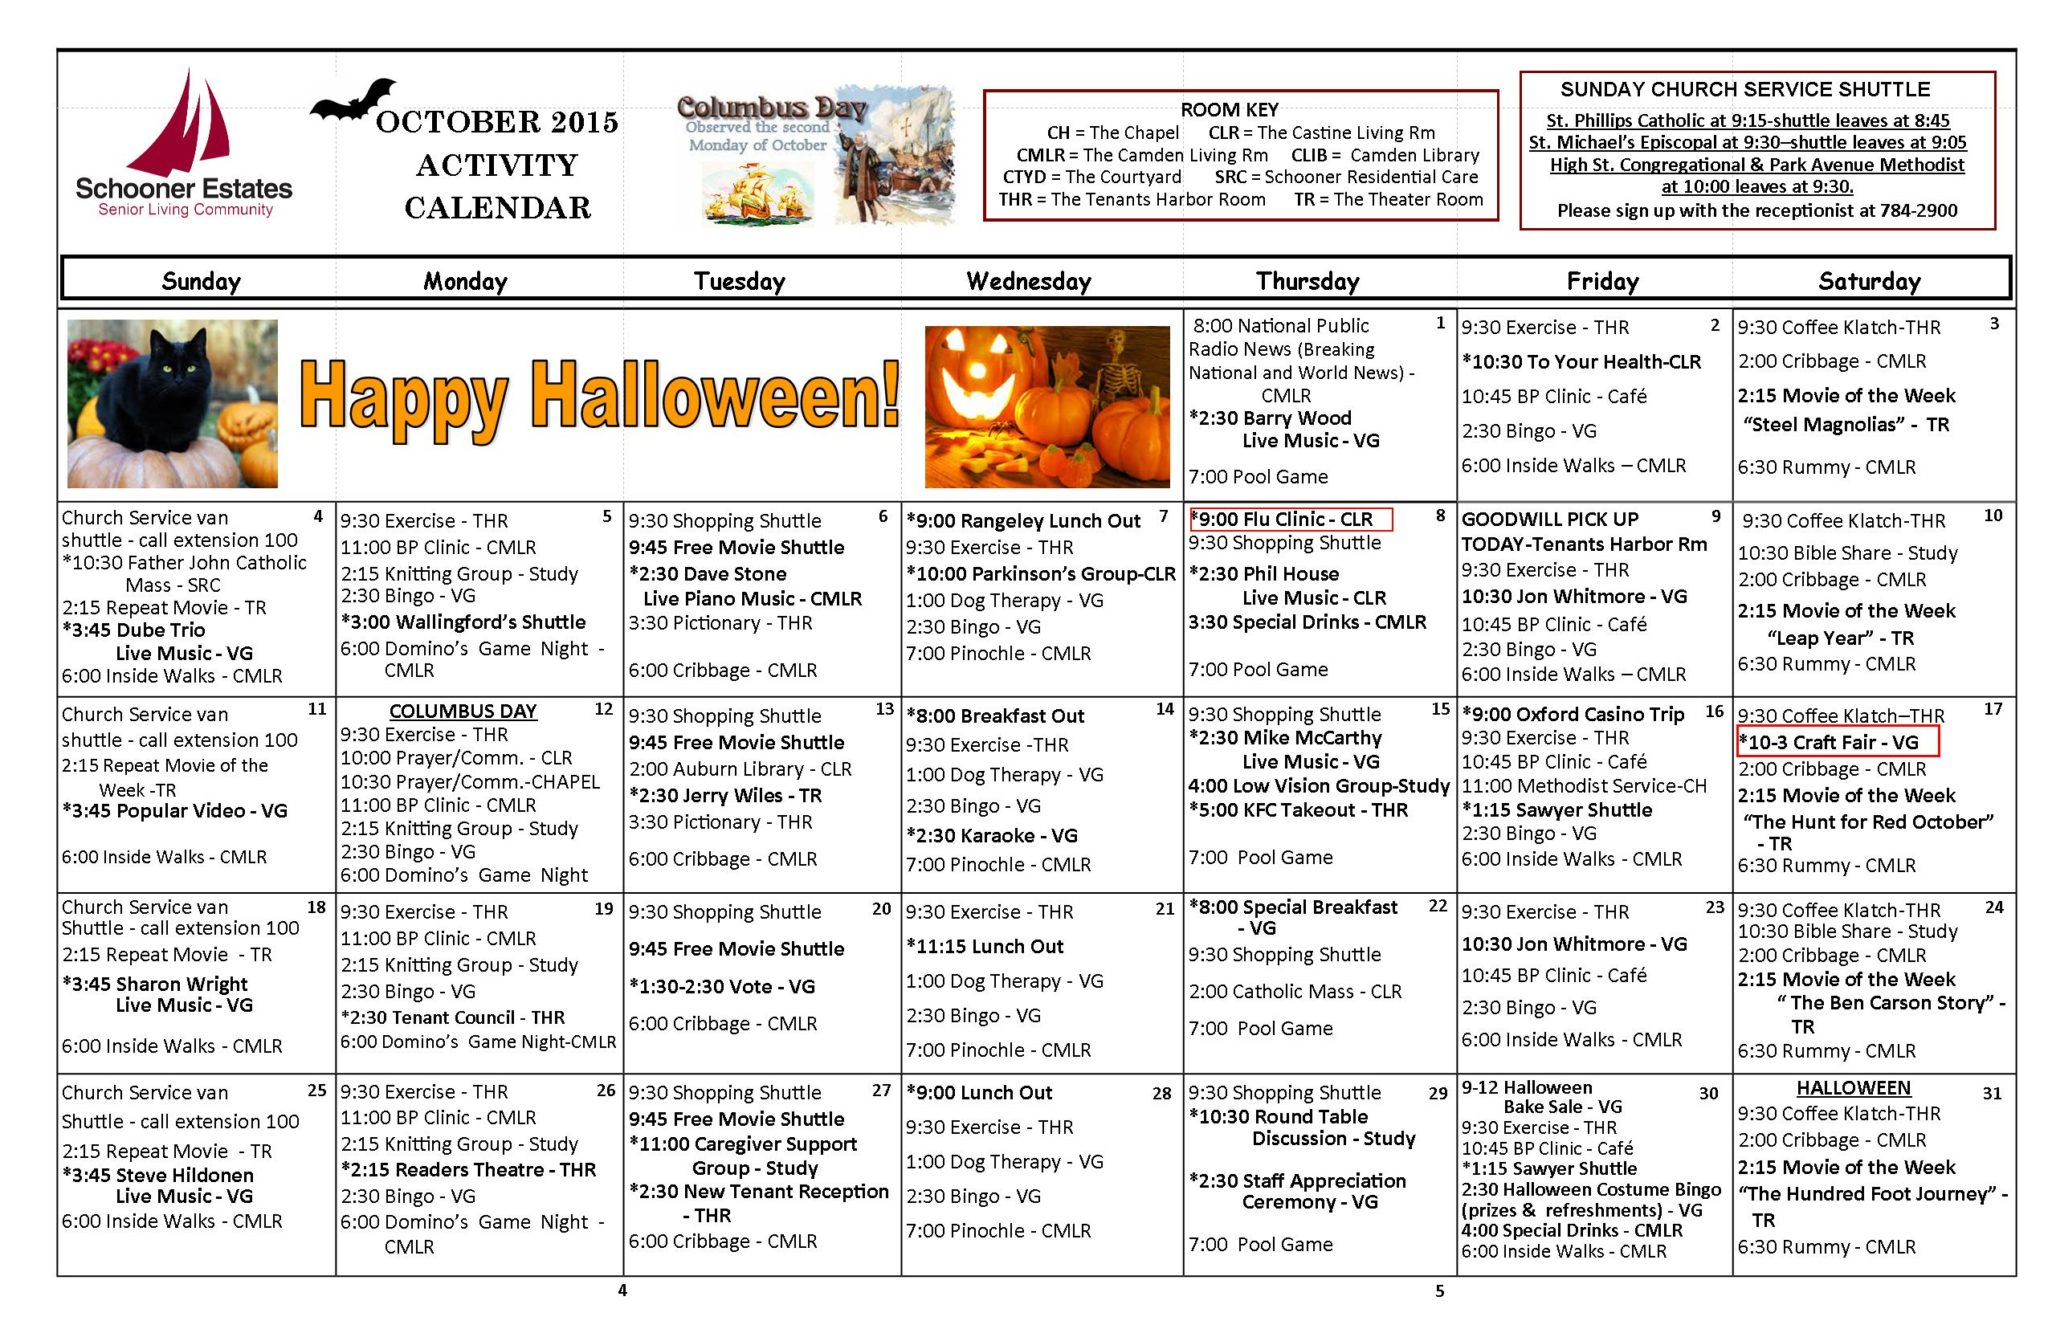 October 2015 Independent Living Activity Calendar